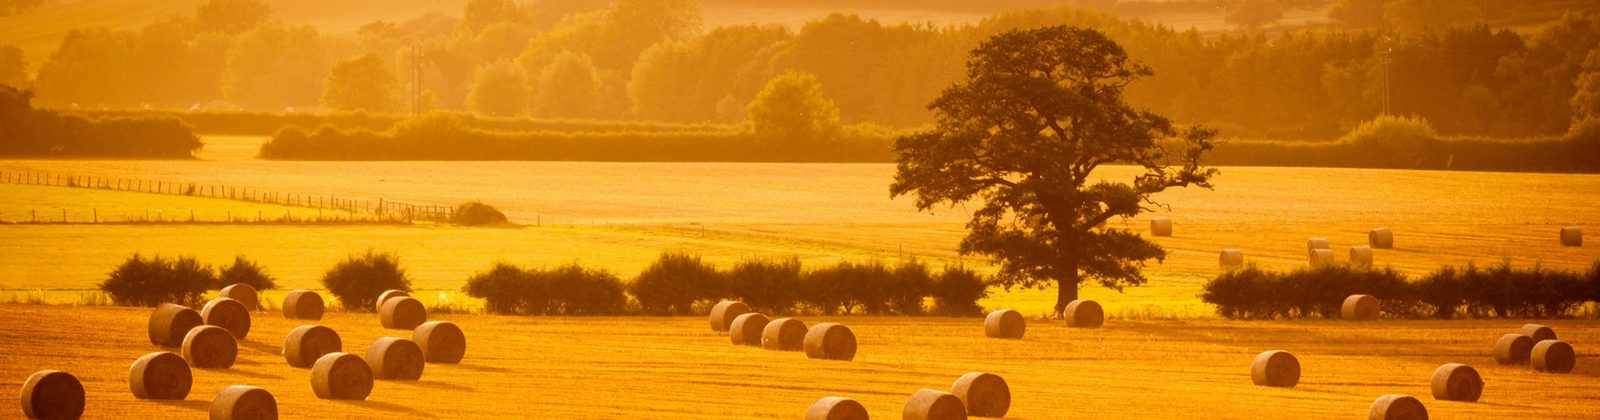 Agricultural Lore - Autumn Edition   Agricultural Law